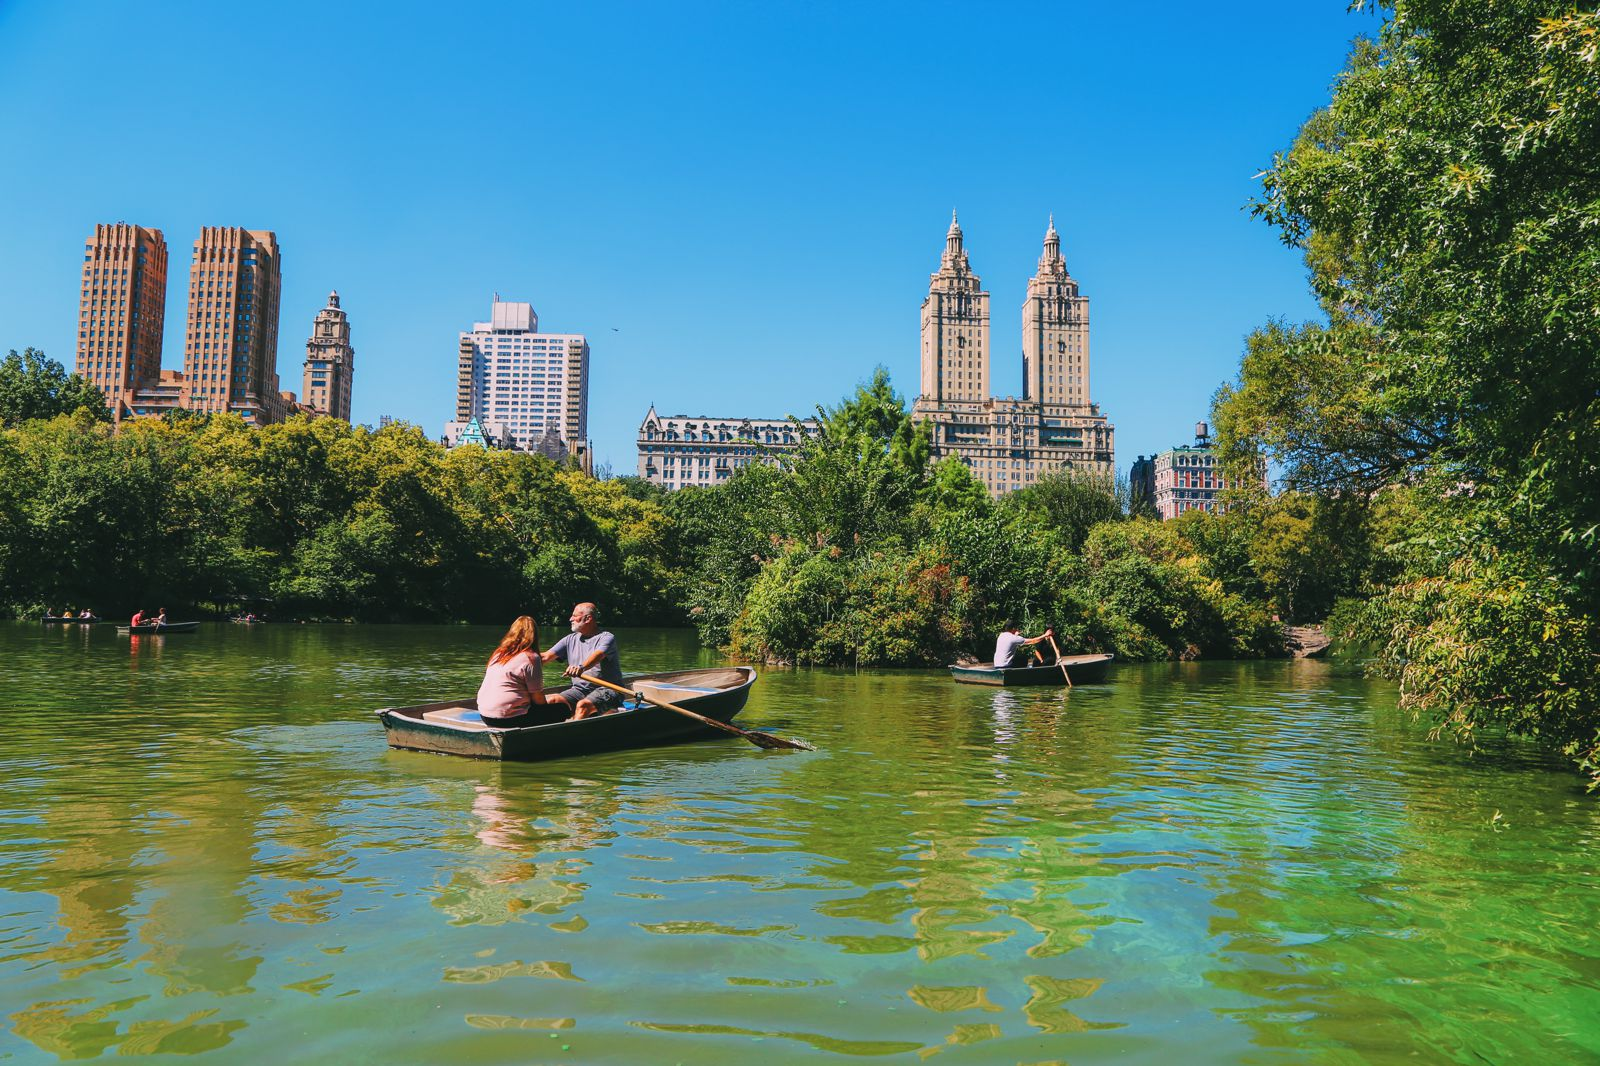 Boating at the Loeb Boathouse in Central Park, New York City (19)